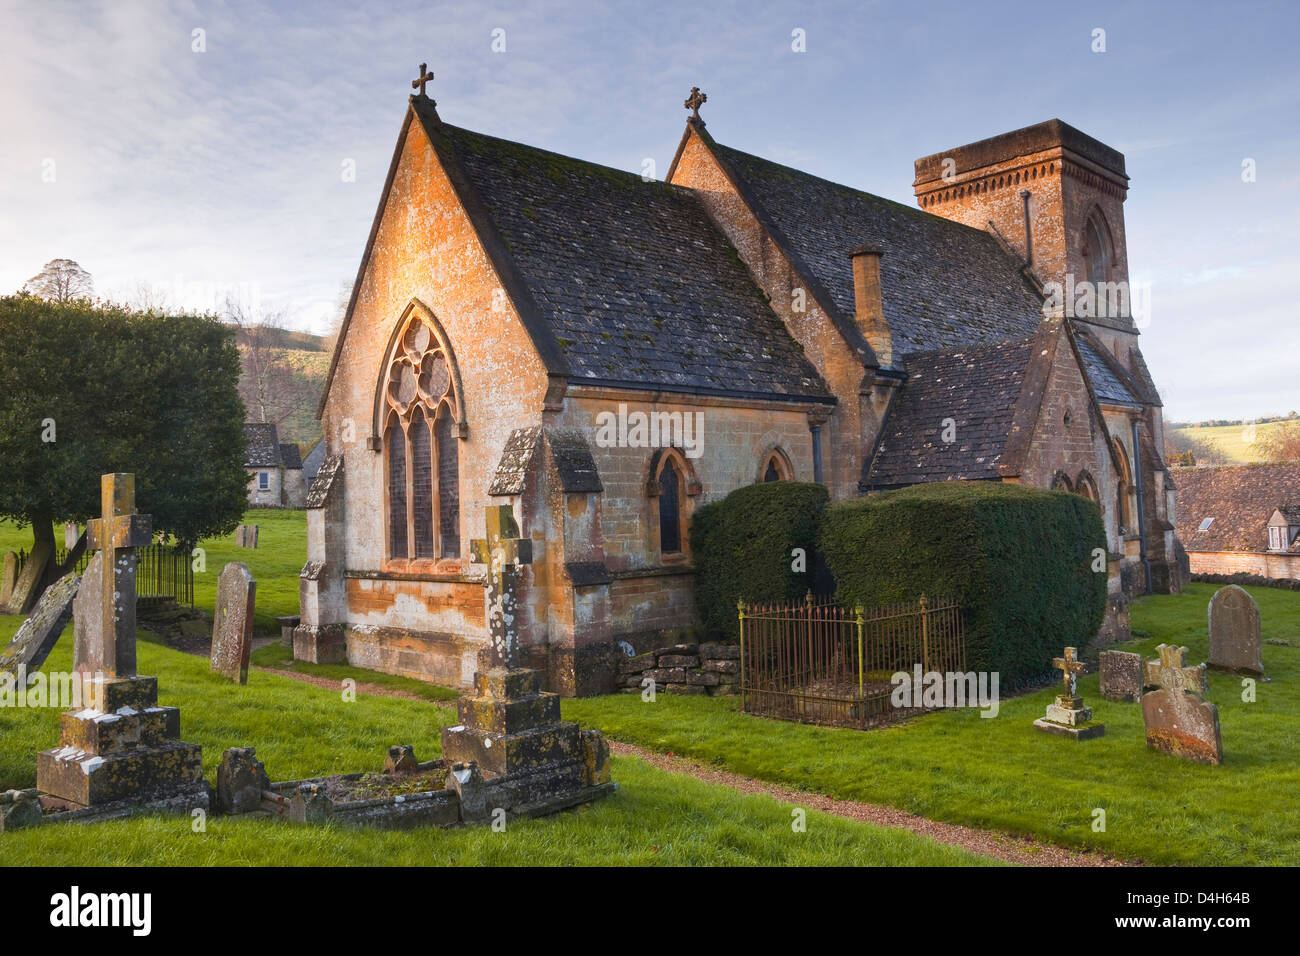 The church of St. Barnabas in the Cotswold village of Snowshill, Gloucestershire, England, UK Stock Photo